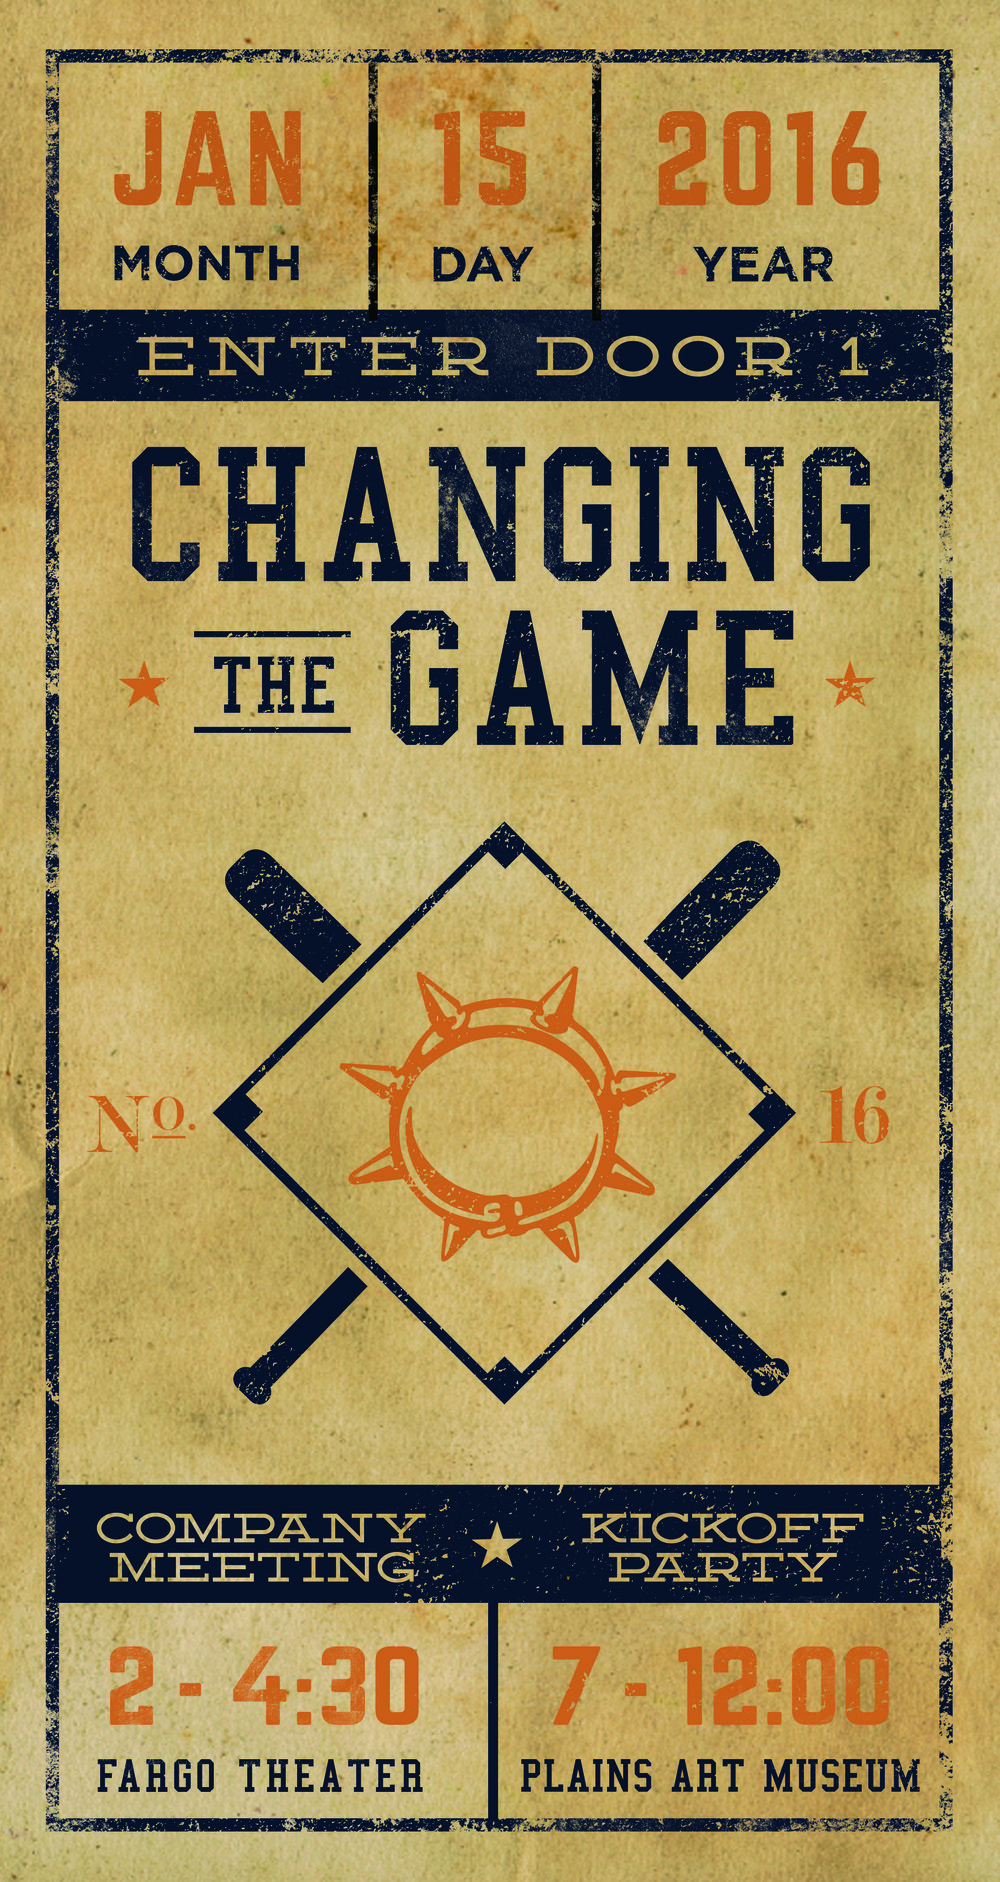 Sundog's 2016 Kickoff Party was baseball themed, so I created posters and accompanying materials with the look and feel of vintage baseball tickets.